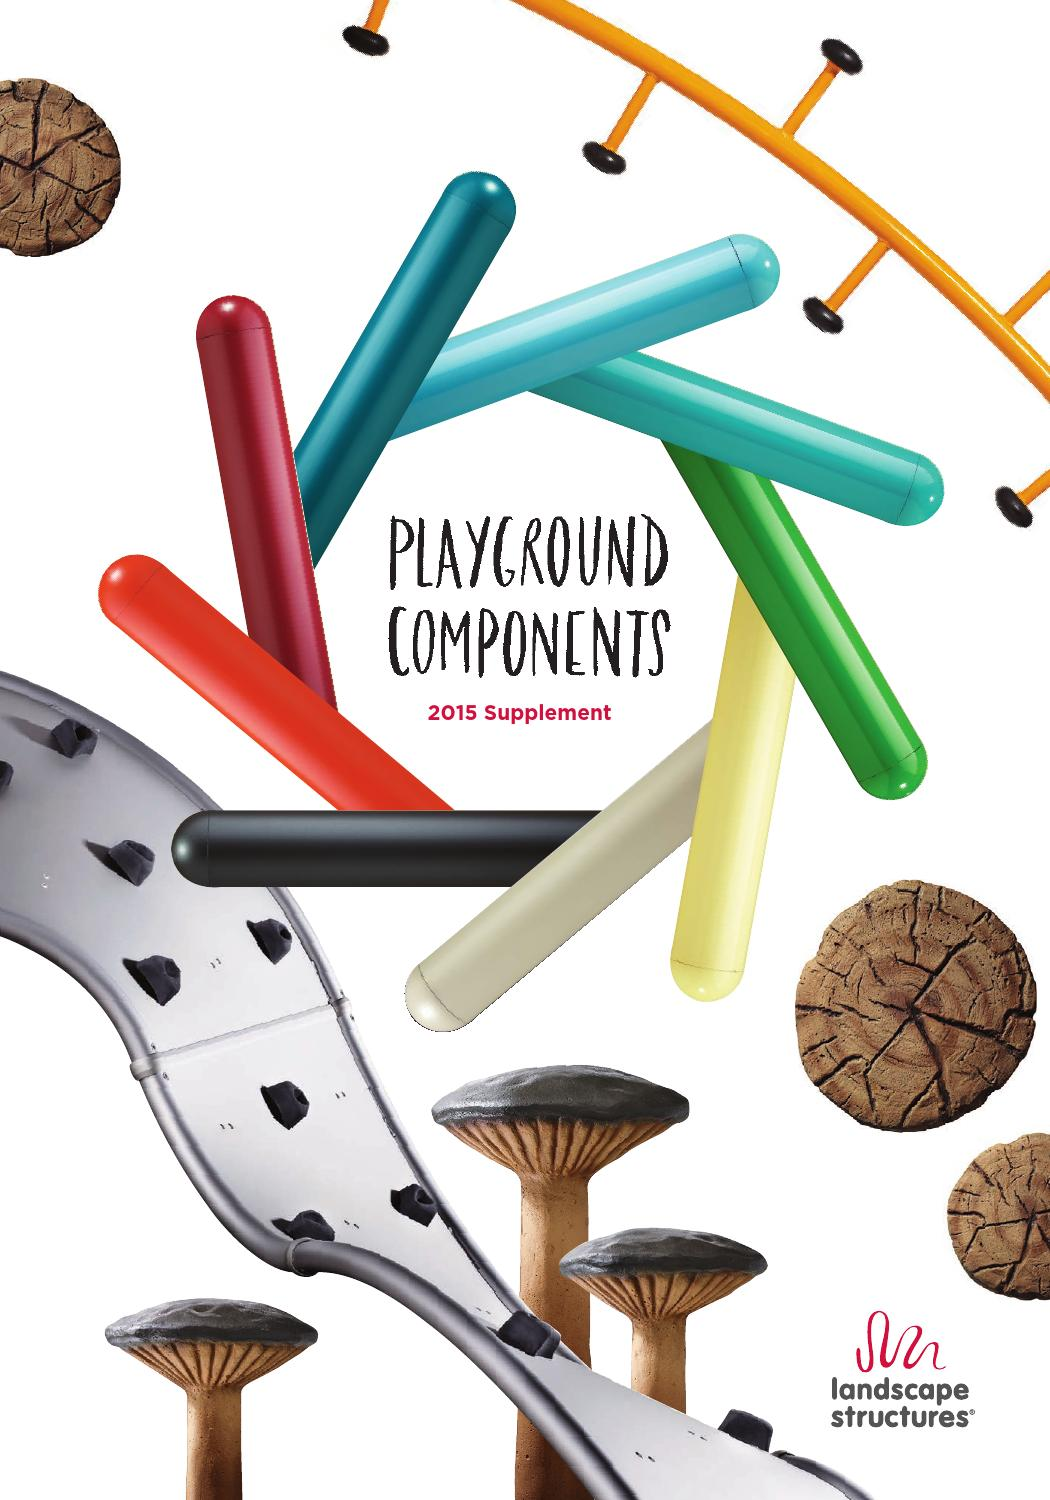 Landscape Structures 2015 Playground Components Supplement by.